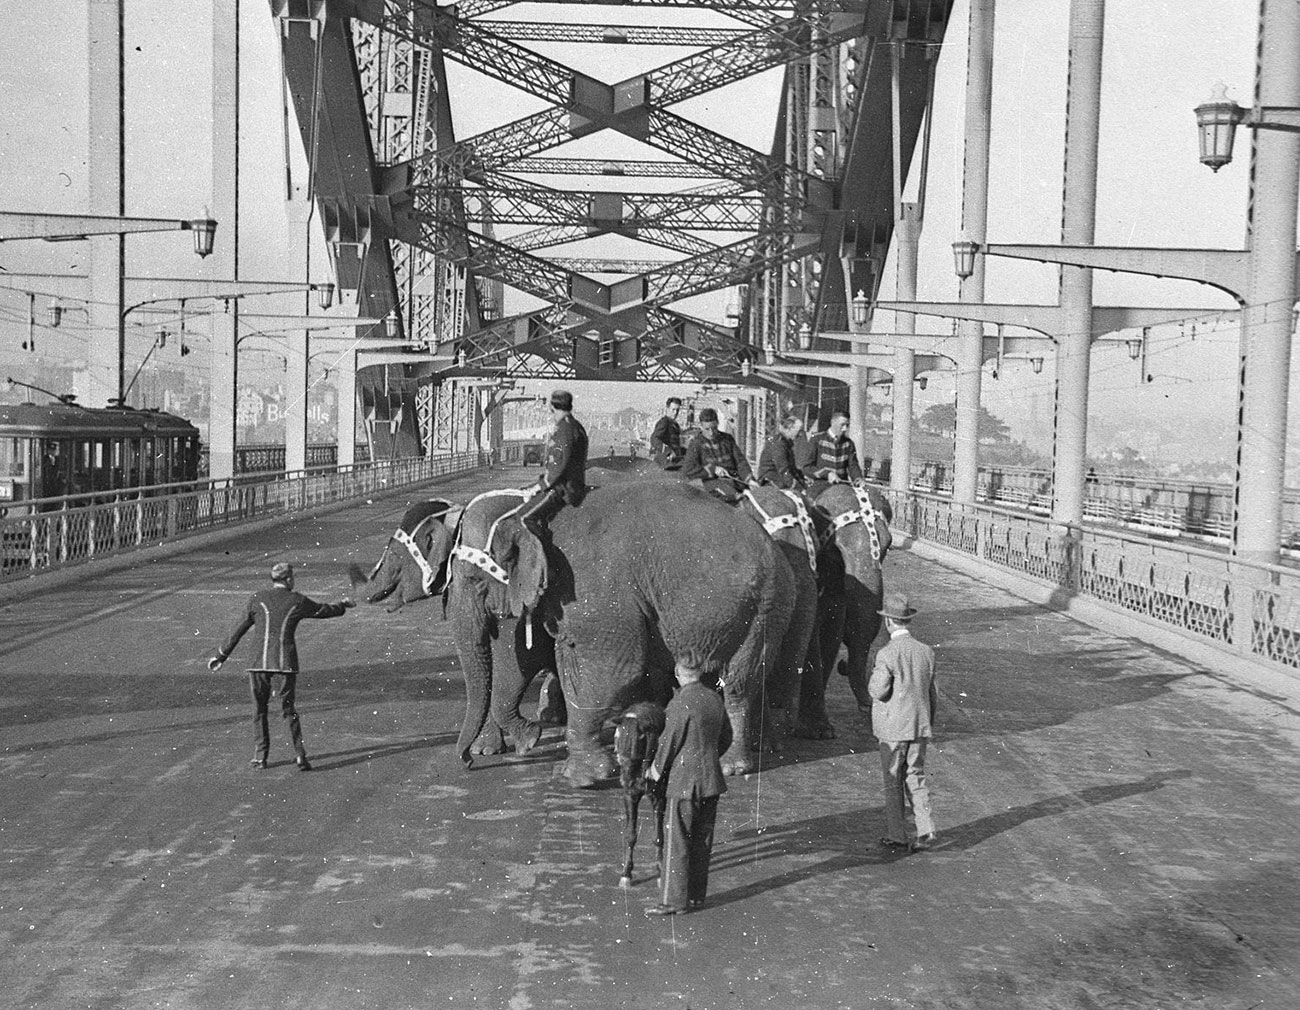 Six Wirths' Circus elephants with their attendants and a Shetland pony crossing the Harbour Bridge for publicity, photograph by Sam Hood, 1933, Home and Away – 5787